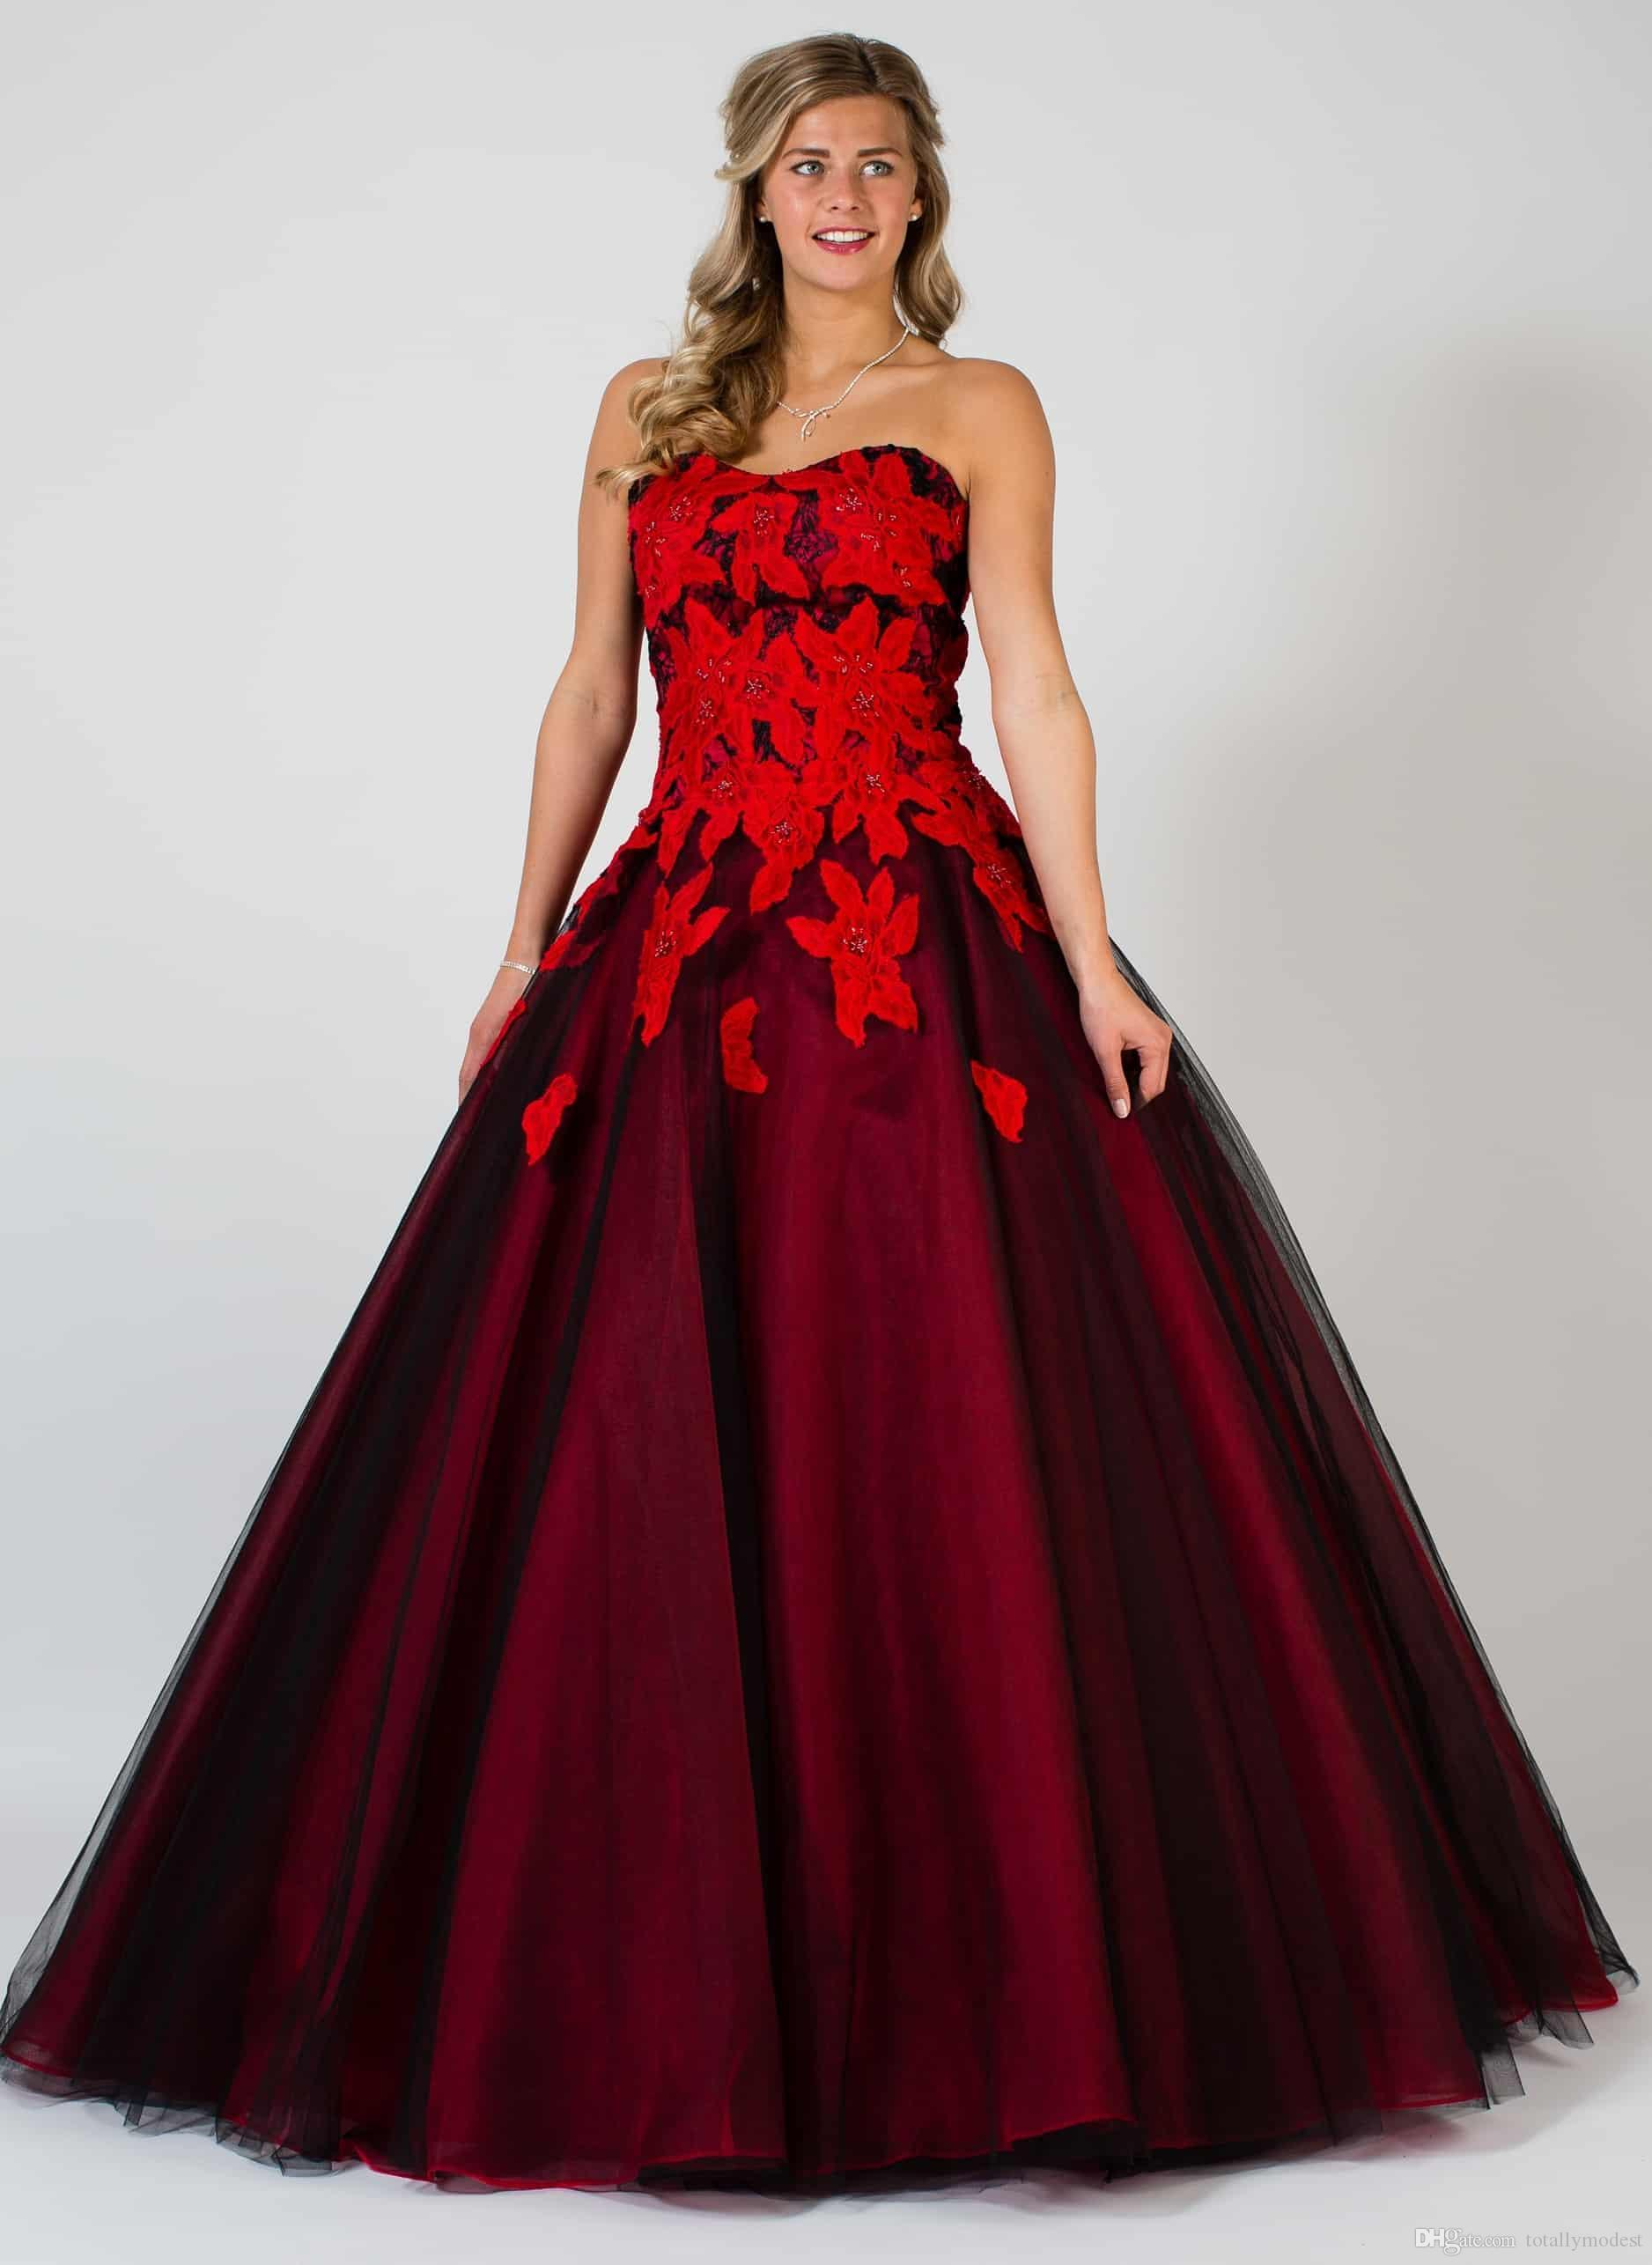 Gothic Black and Red A-line Wedding Dresses Sweetheart Lace Tulle Bride's Non White Bridal Gown Custom Made Robe De Mariee